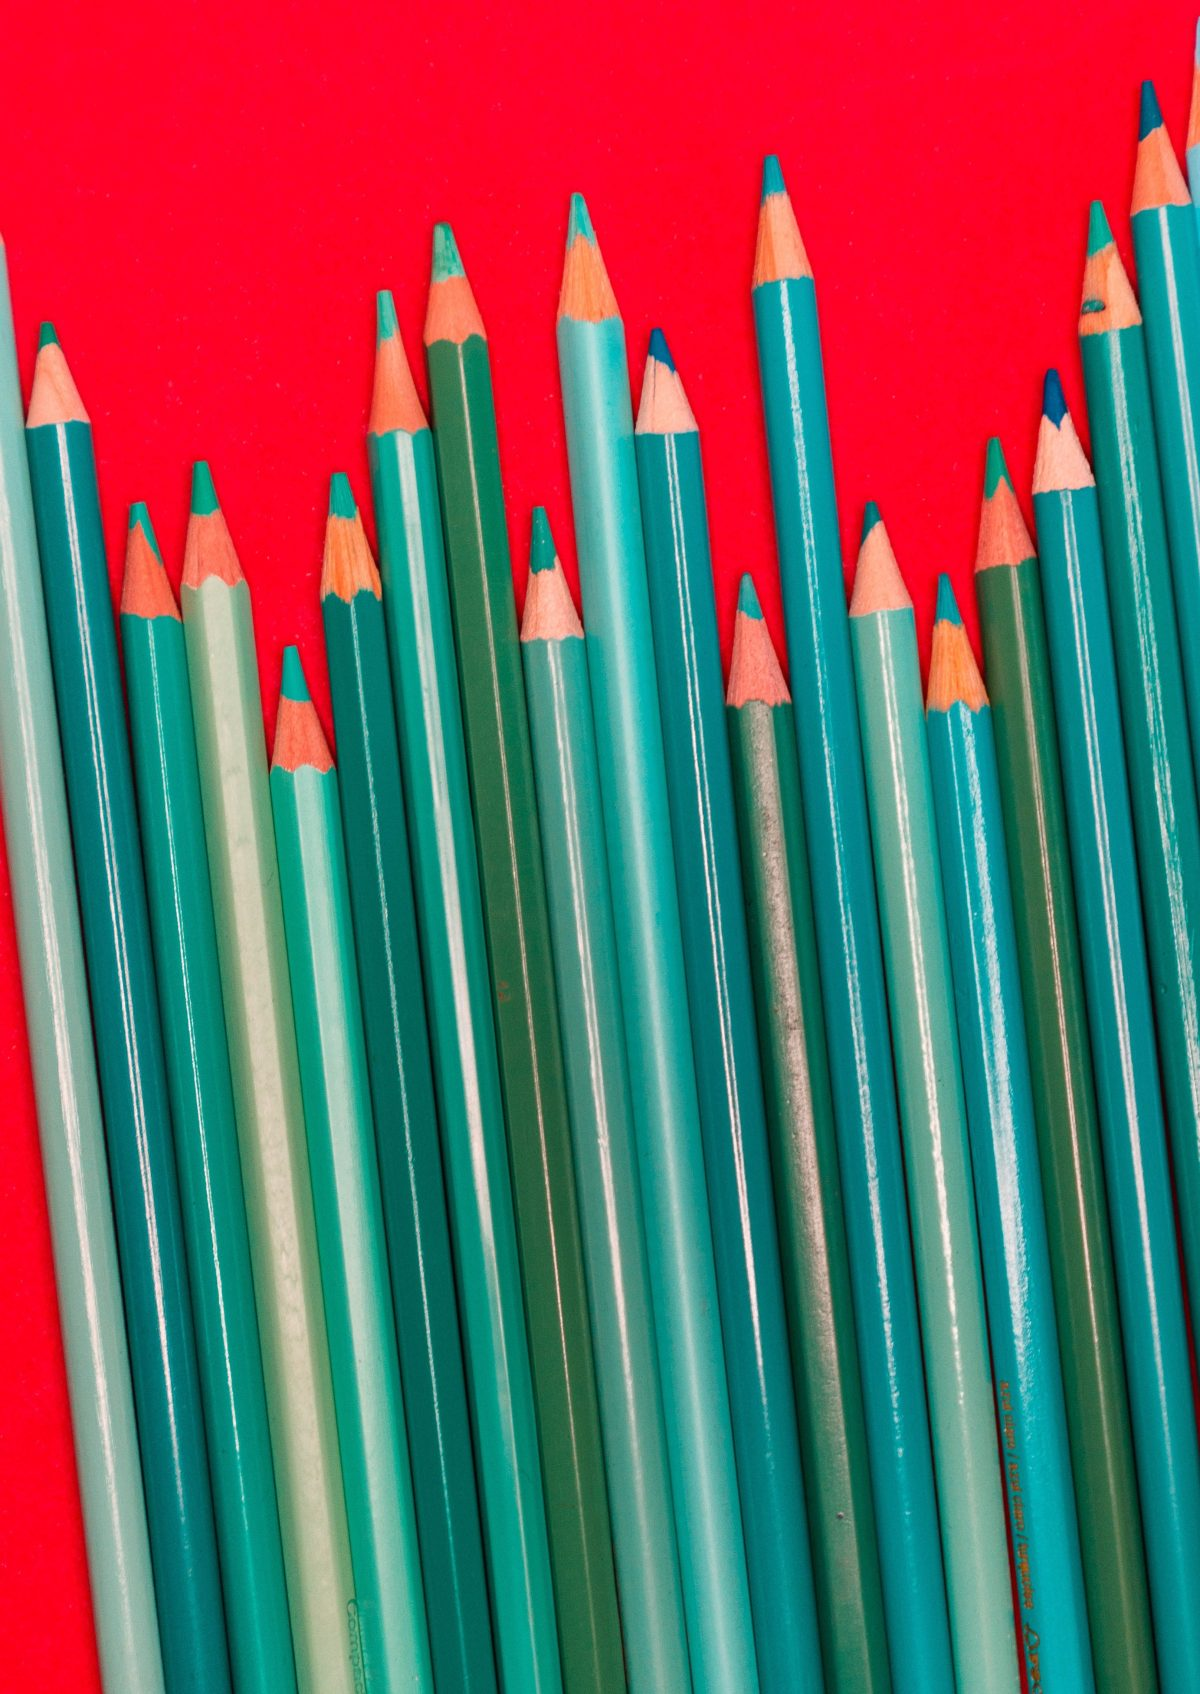 blue and green pencils against red background